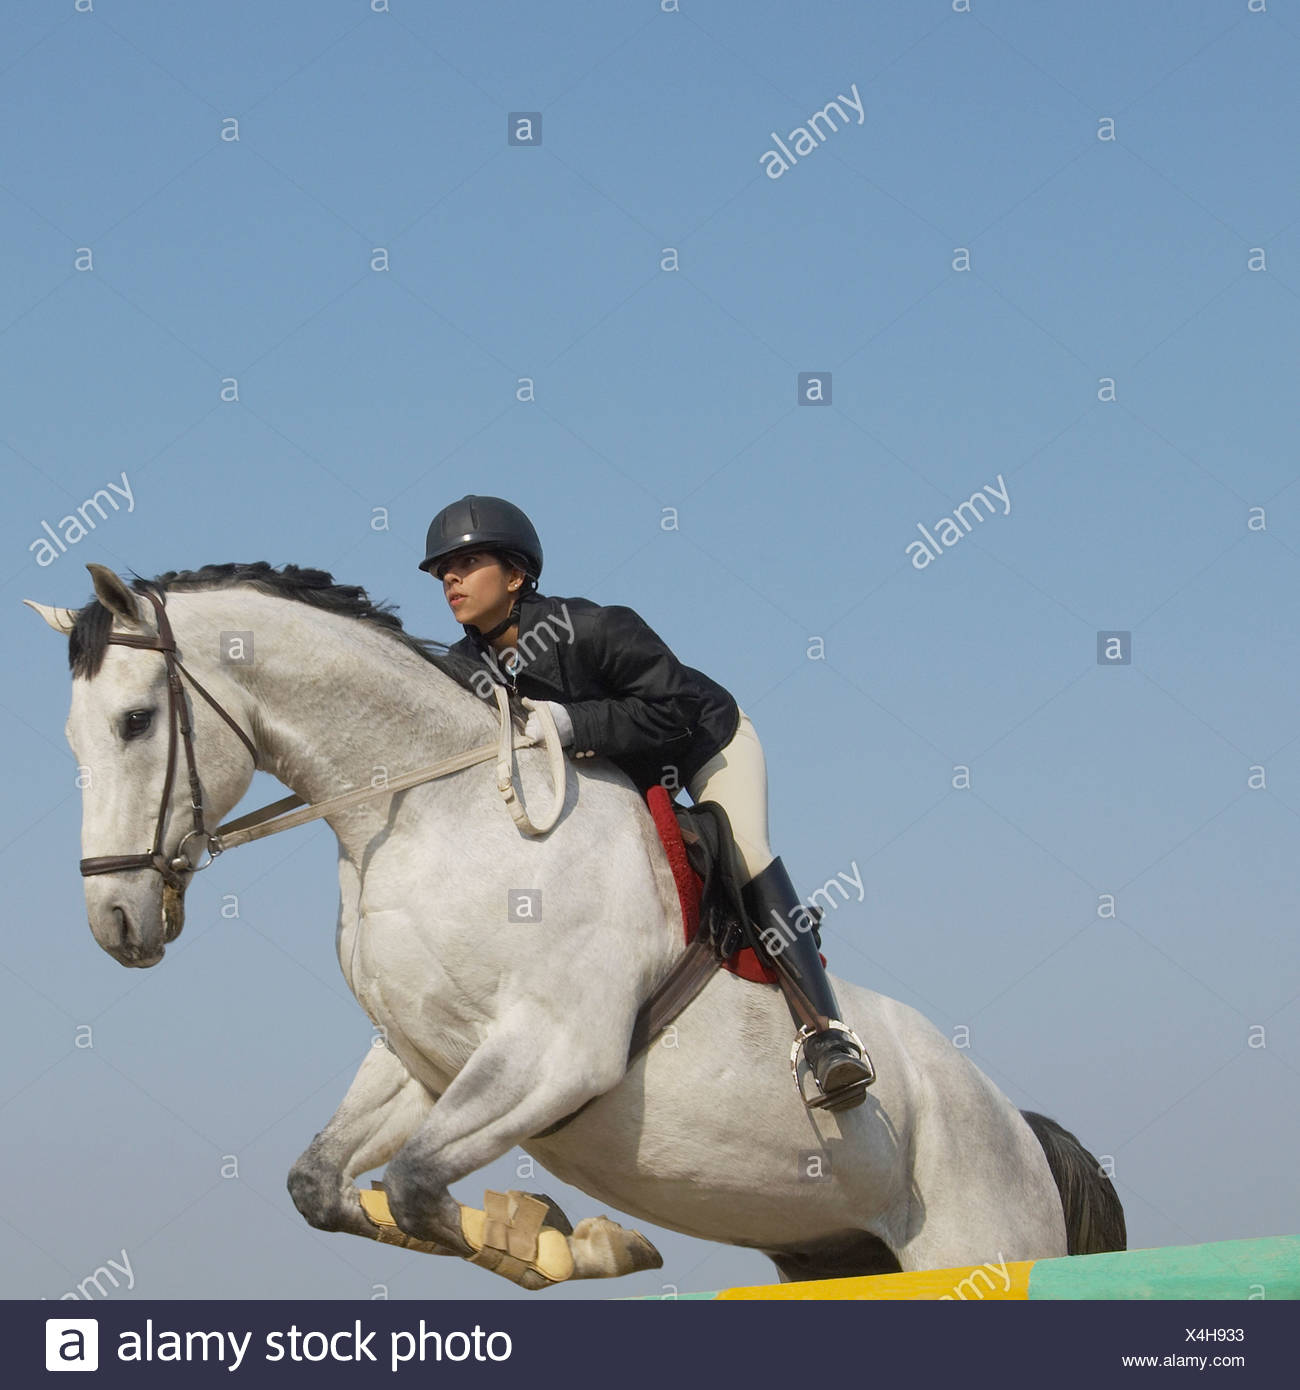 Female jockey riding a horse and jumping over a hurdle - Stock Image